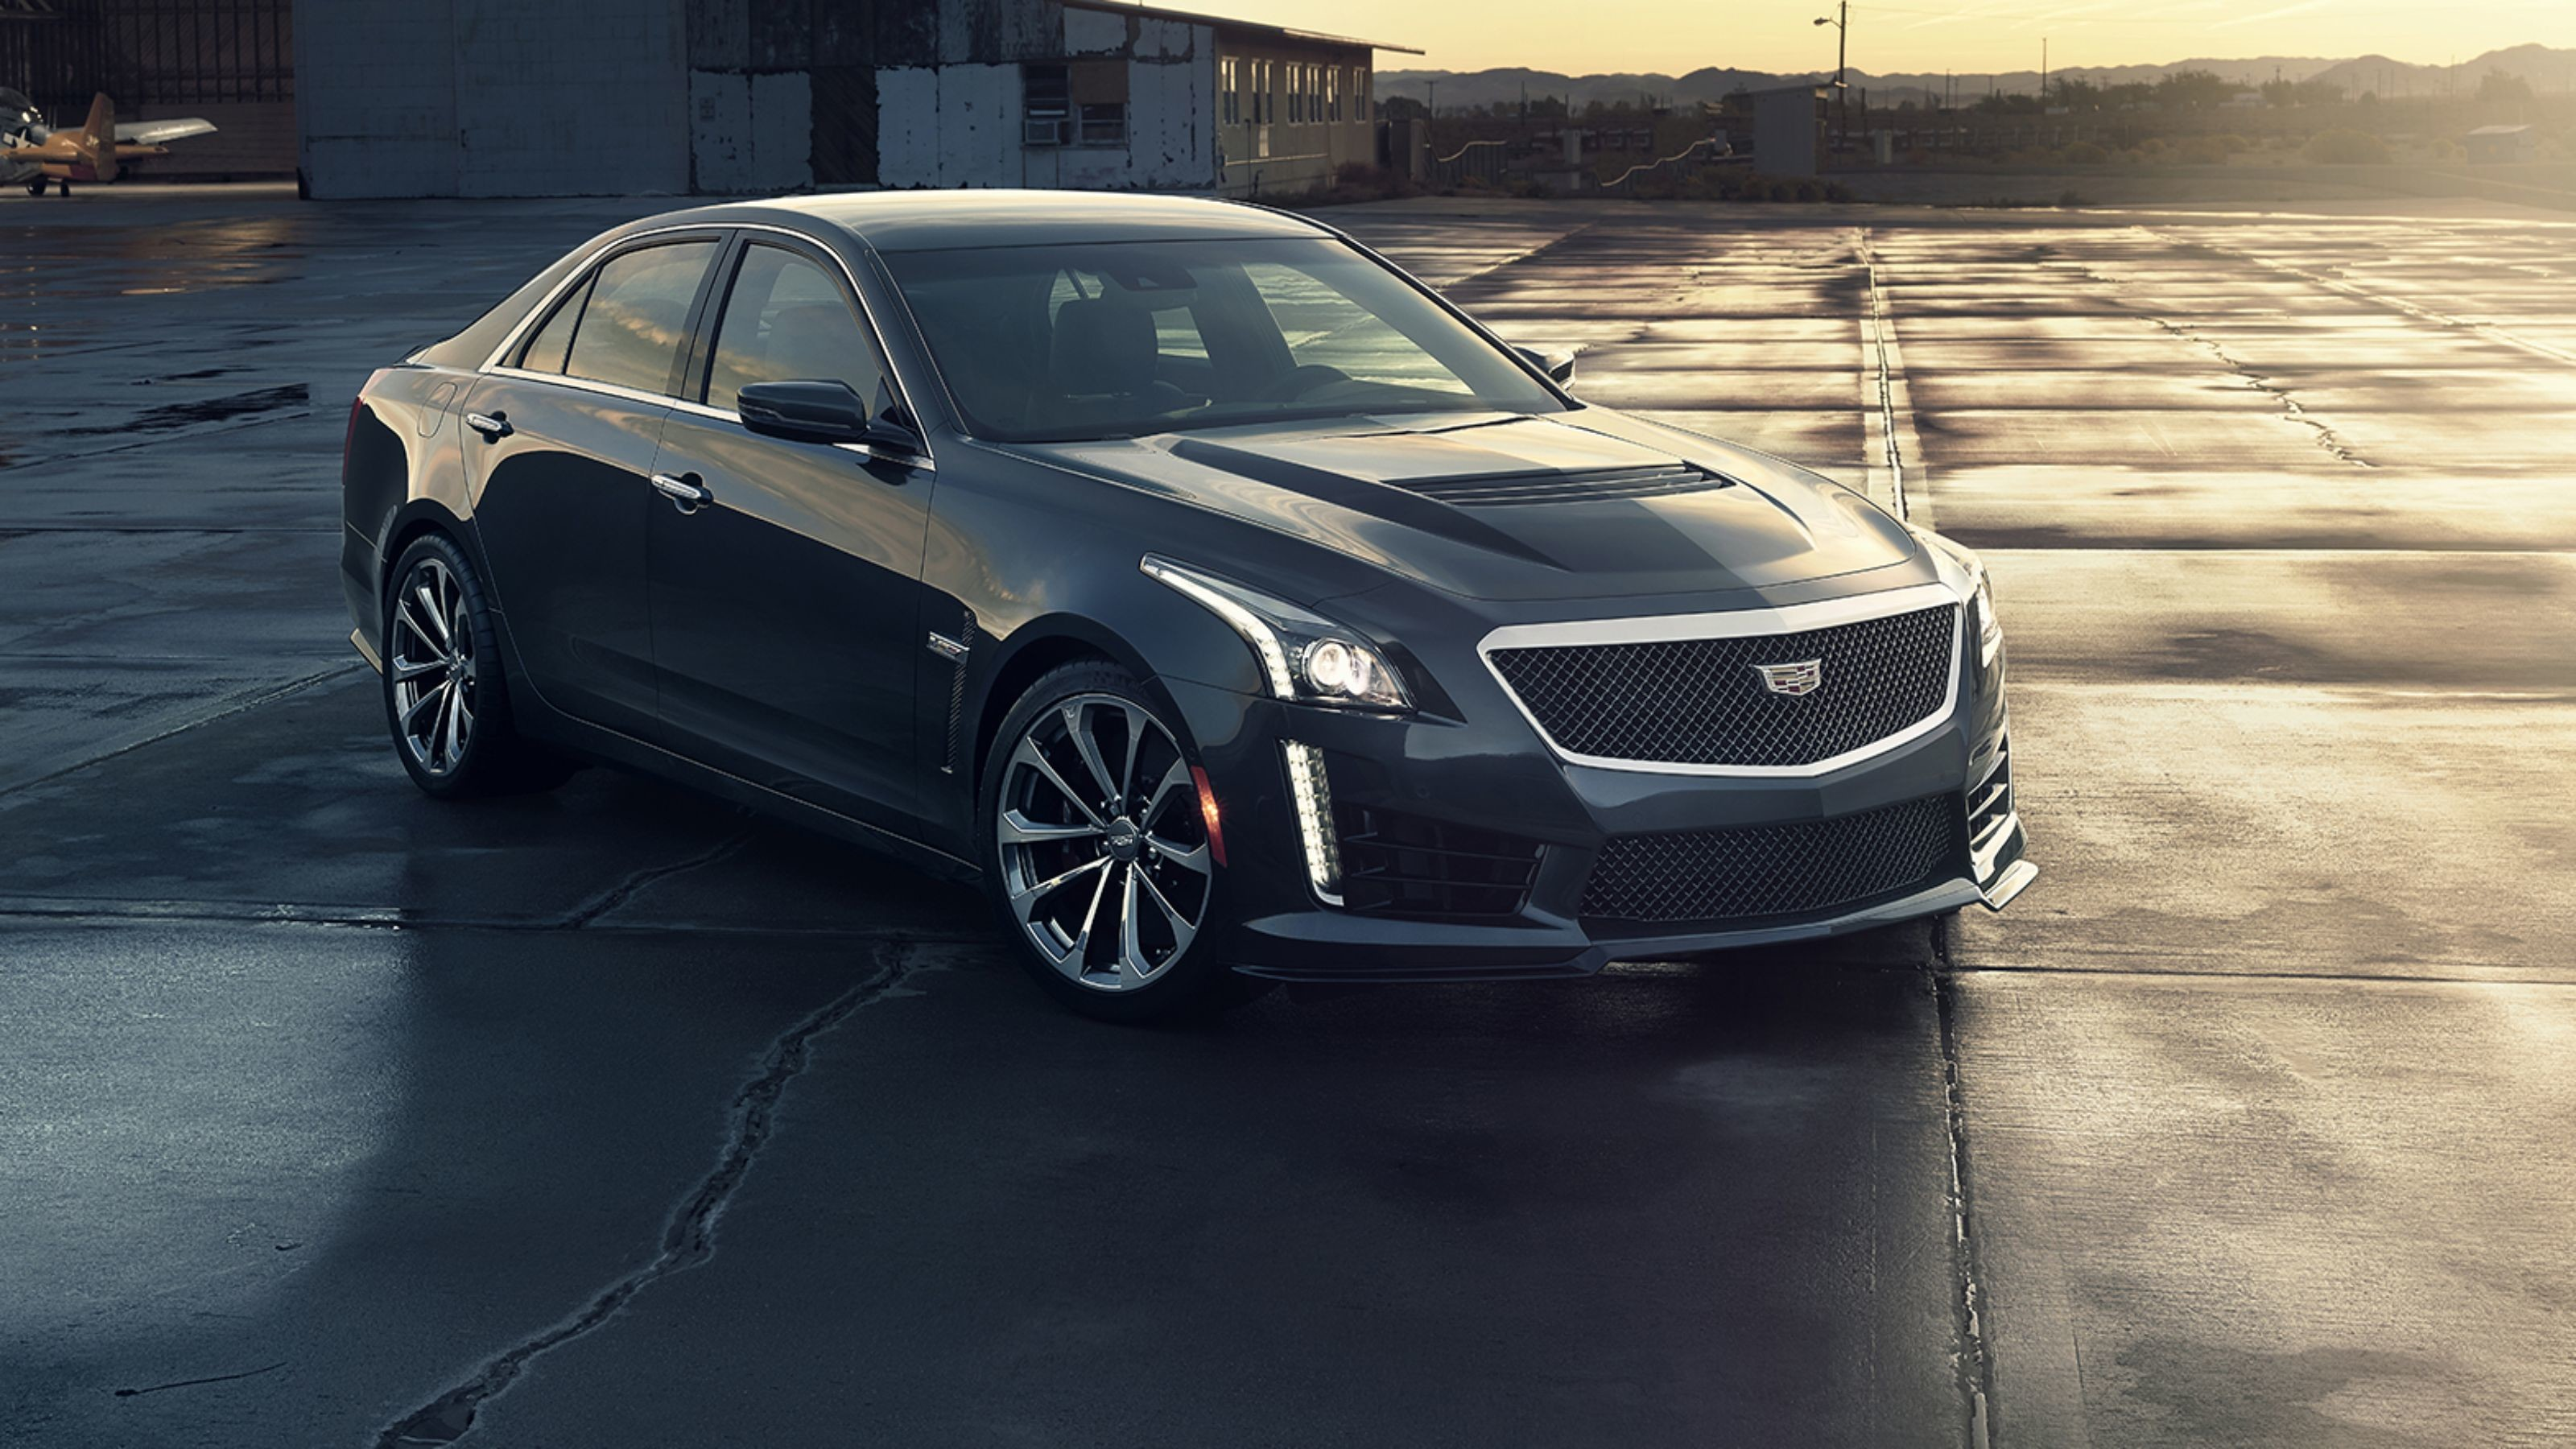 Res: 3200x1800, cadillac CTS Wallpapers 1 - 3200 X 1800